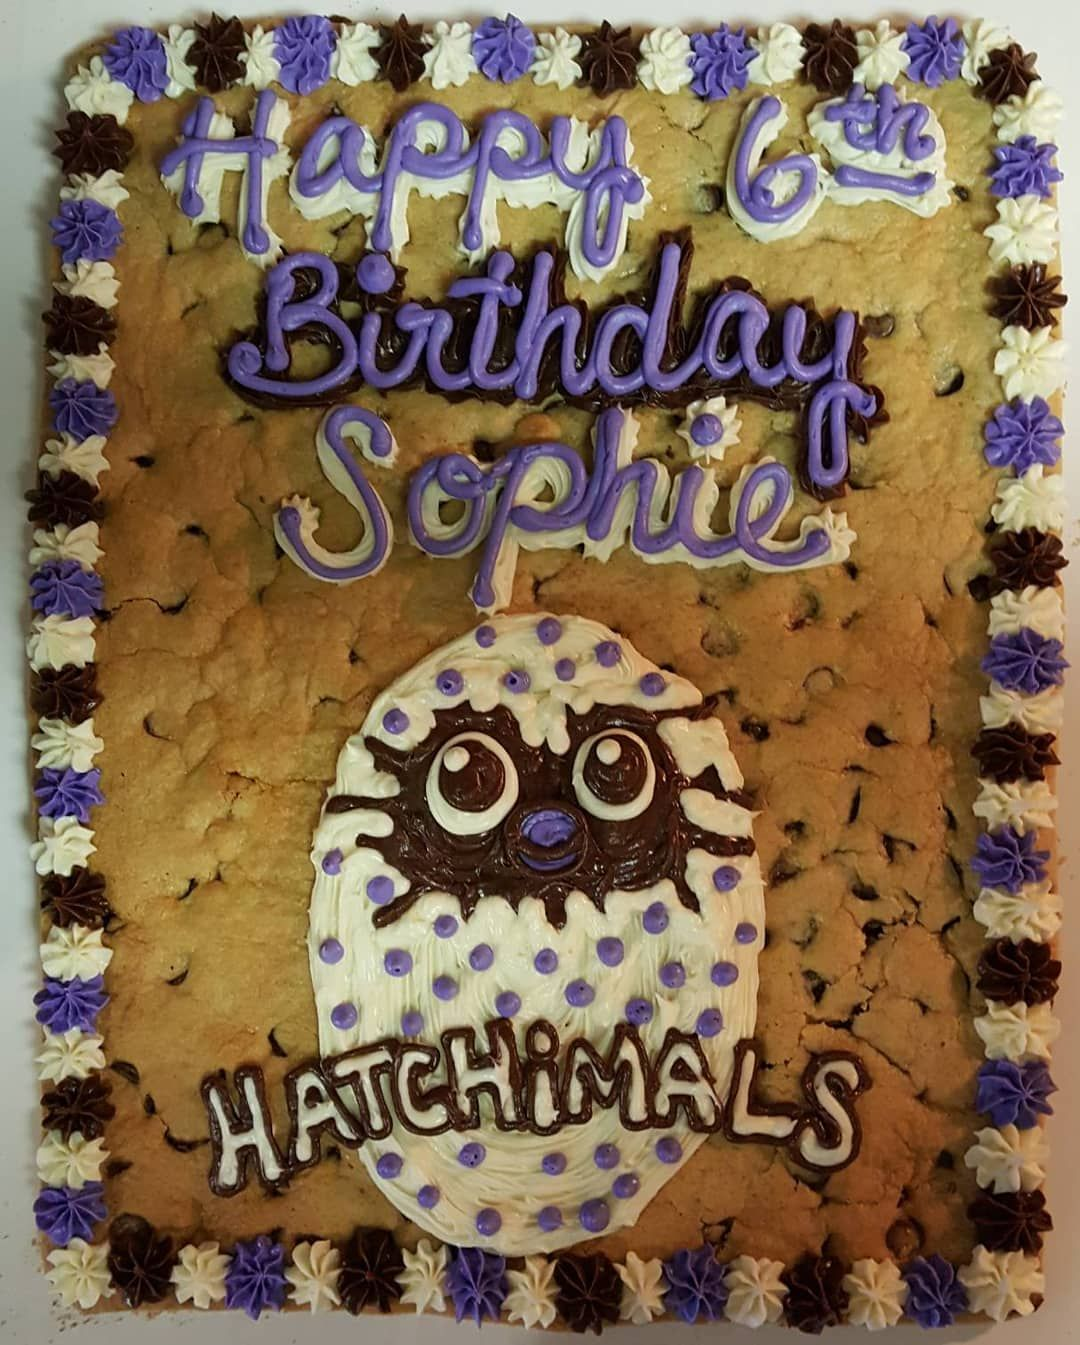 Hatchimal Cookie Cake For A Family Birthday Party FREE Delivery In Austin TX